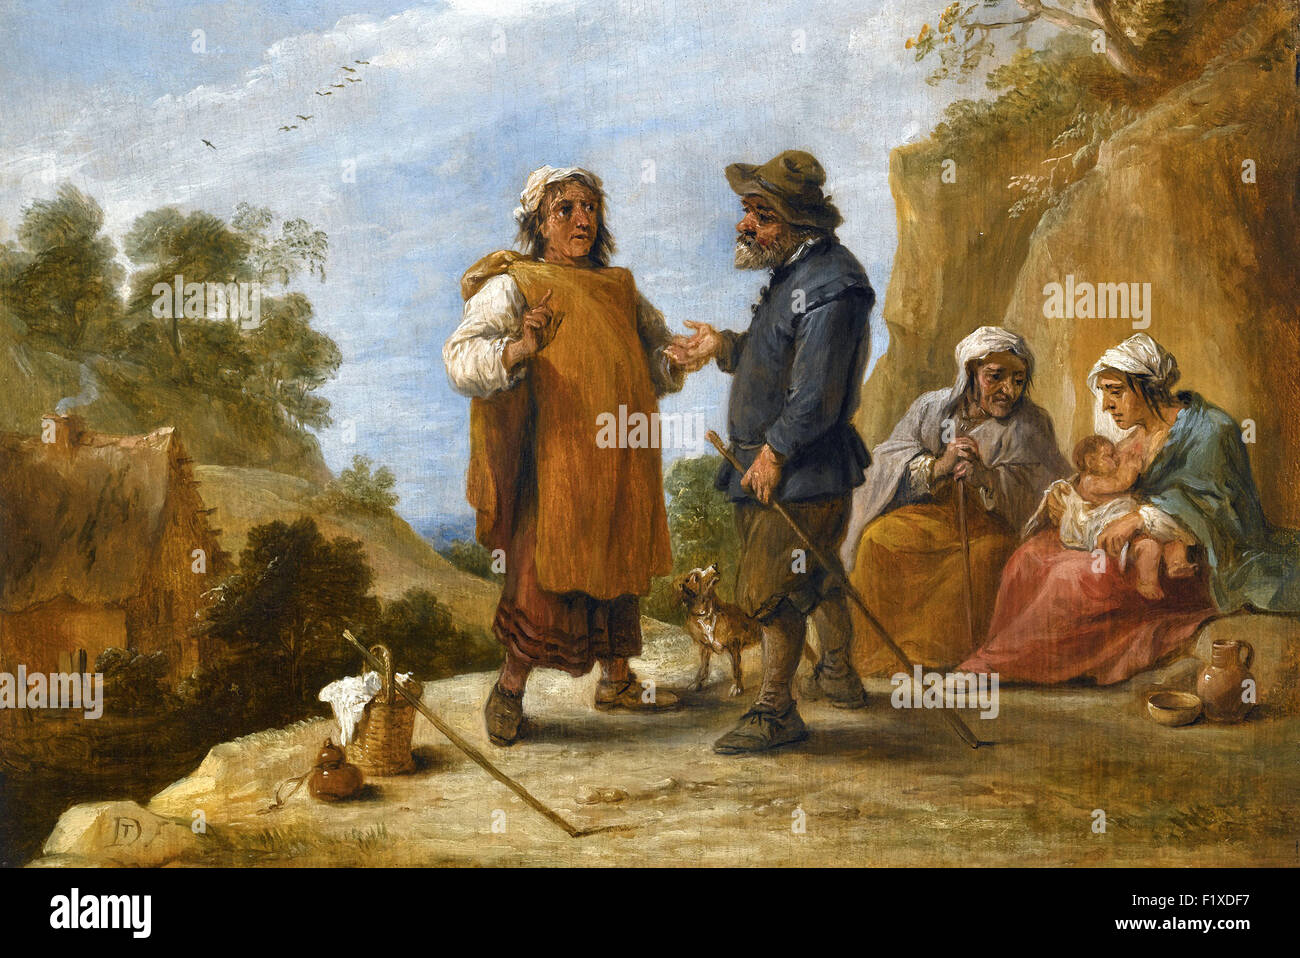 David Teniers the Younger - Gypsies in a Rocky Landscape - Stock Image